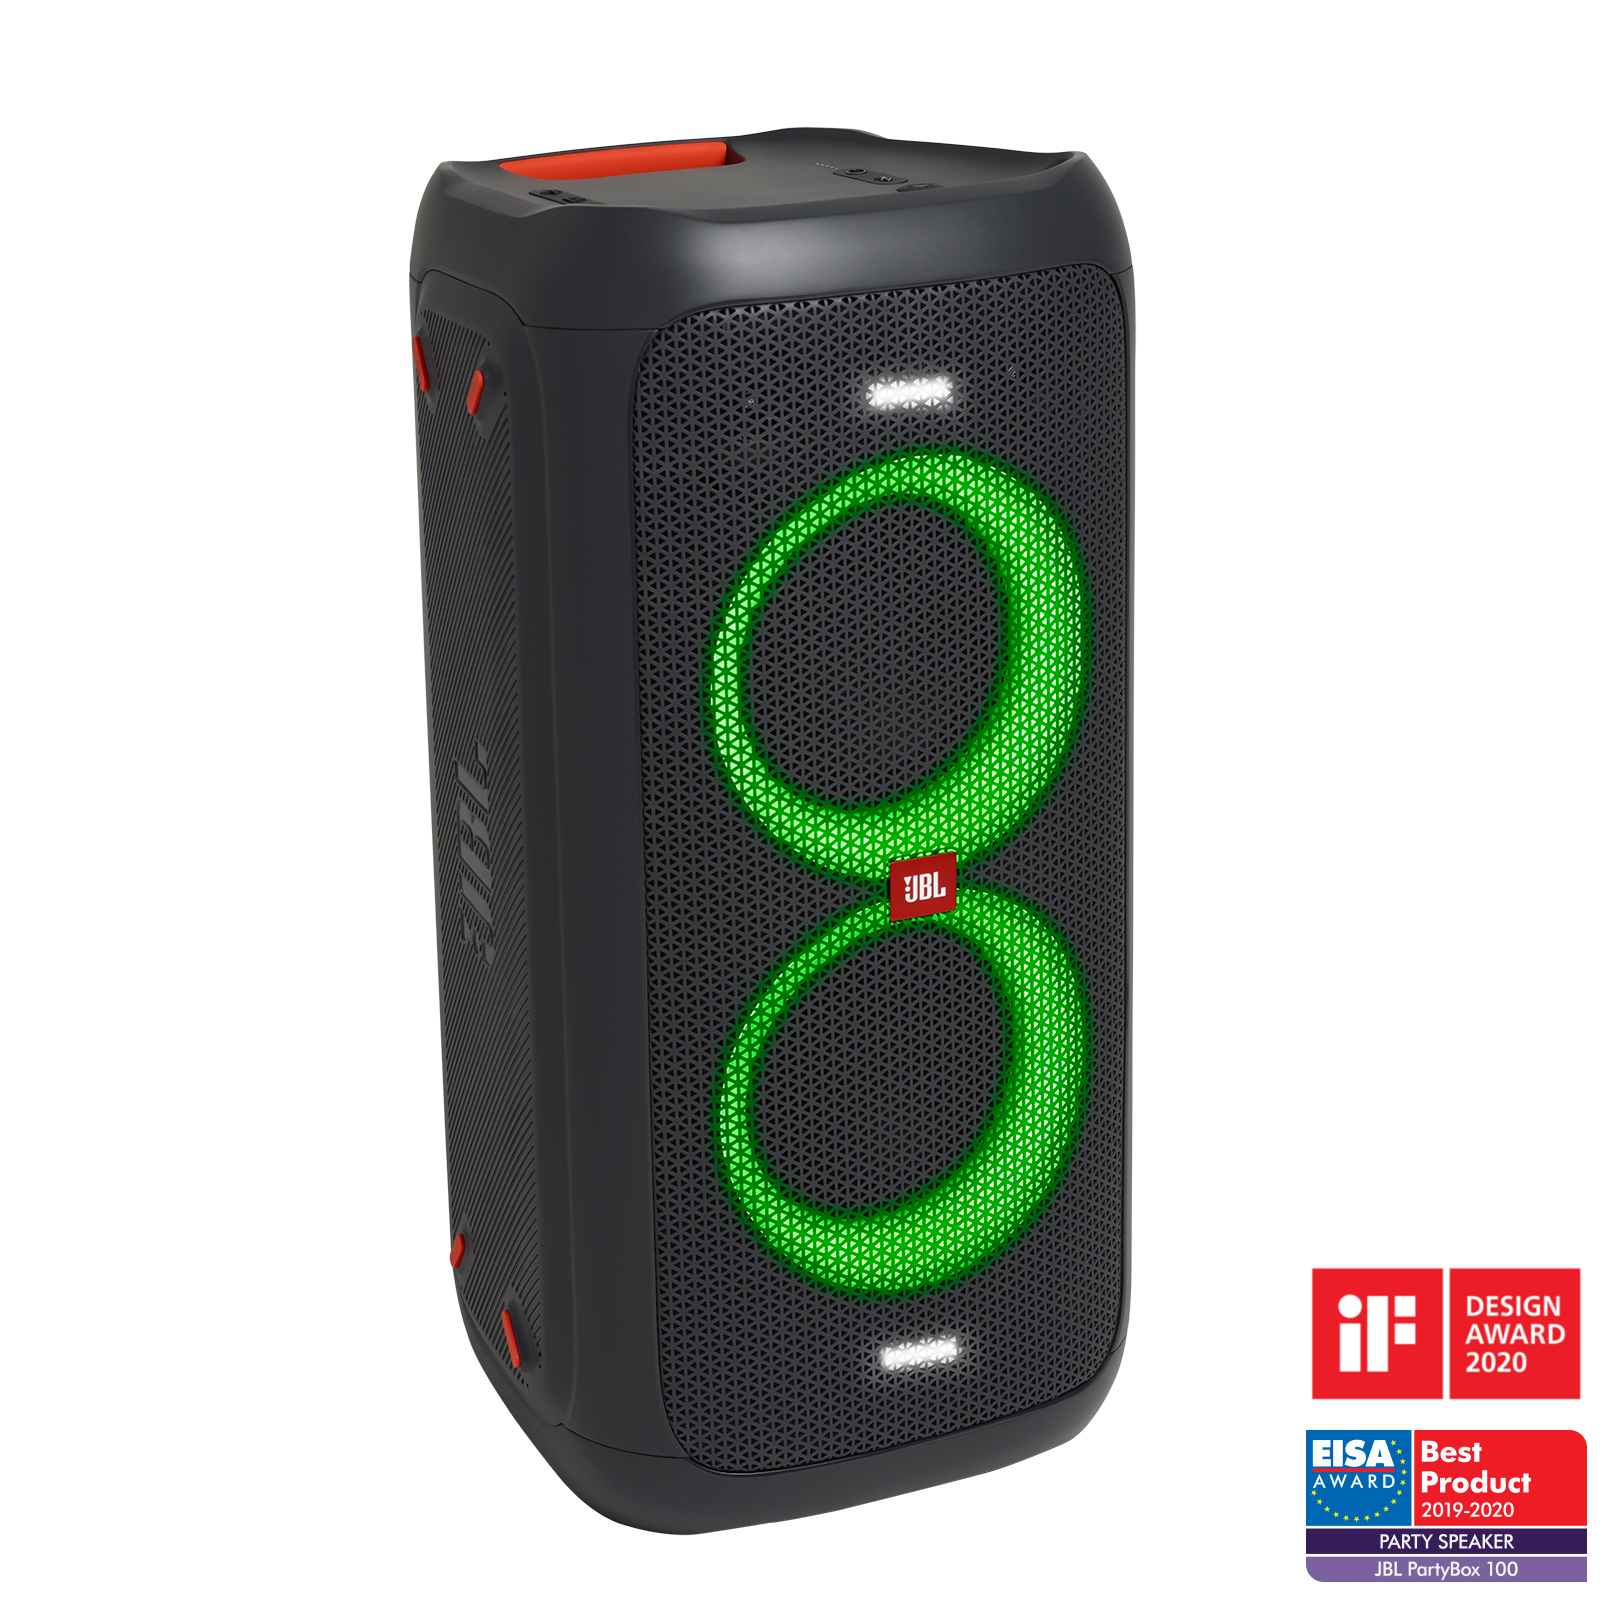 China:- - Black - Powerful portable Bluetooth party speaker with dynamic light show - Hero